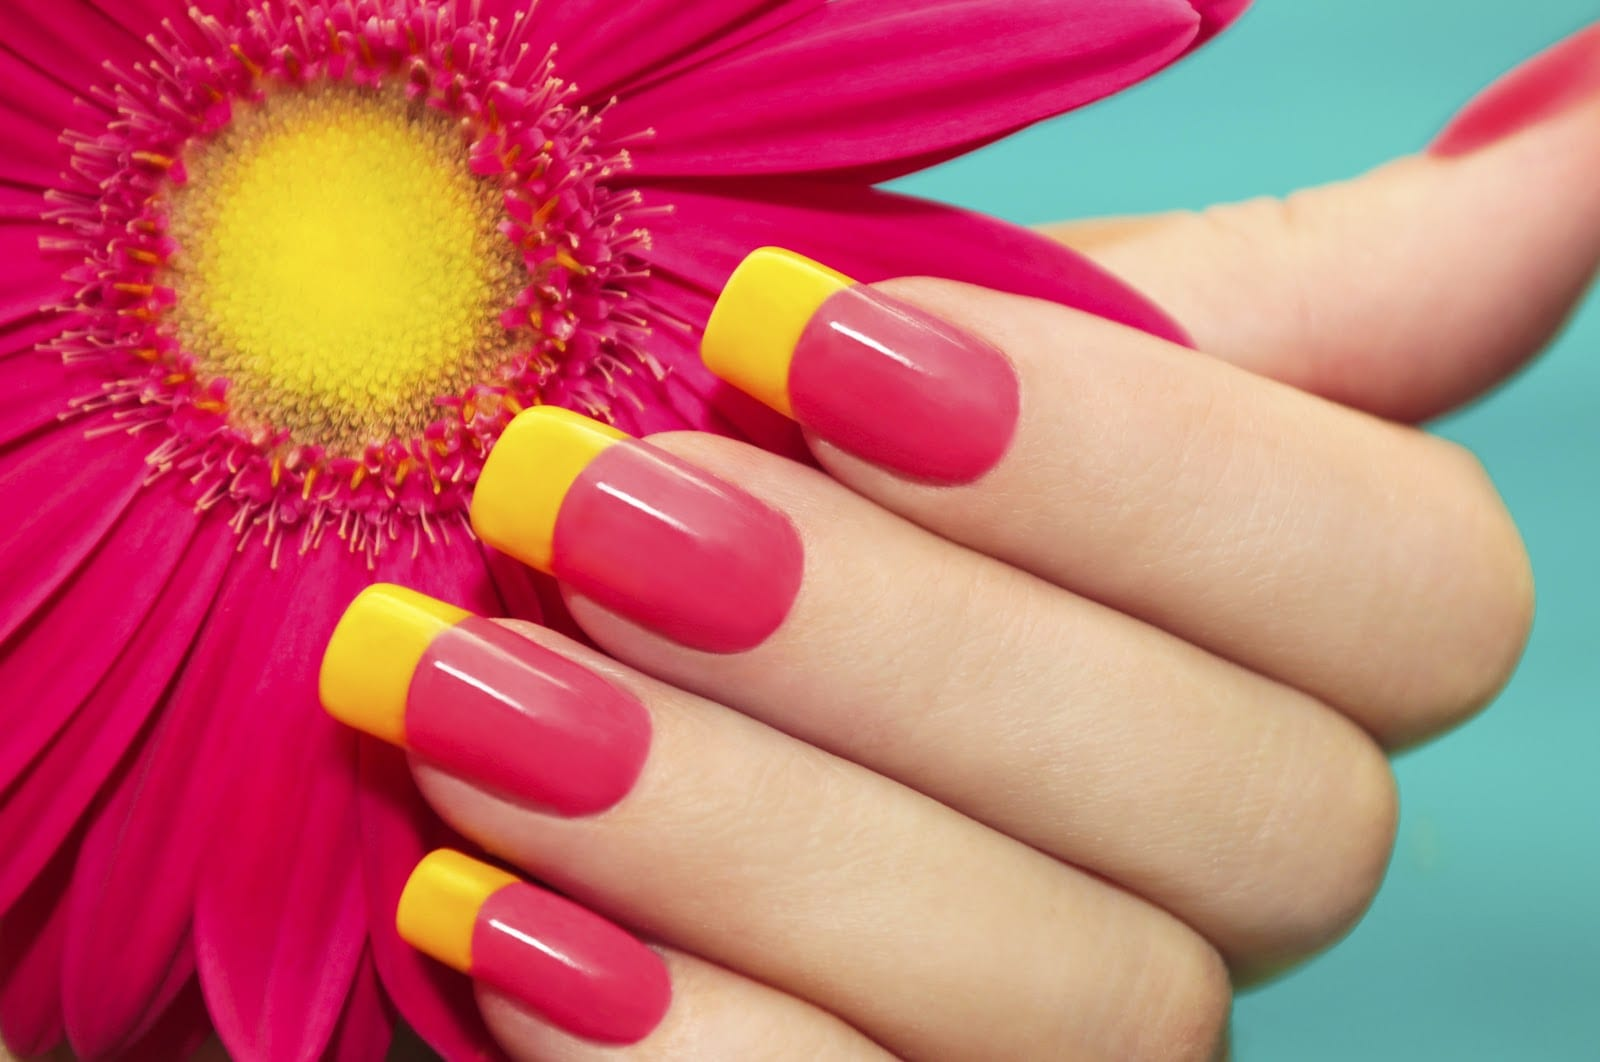 Why french tips are called french tips